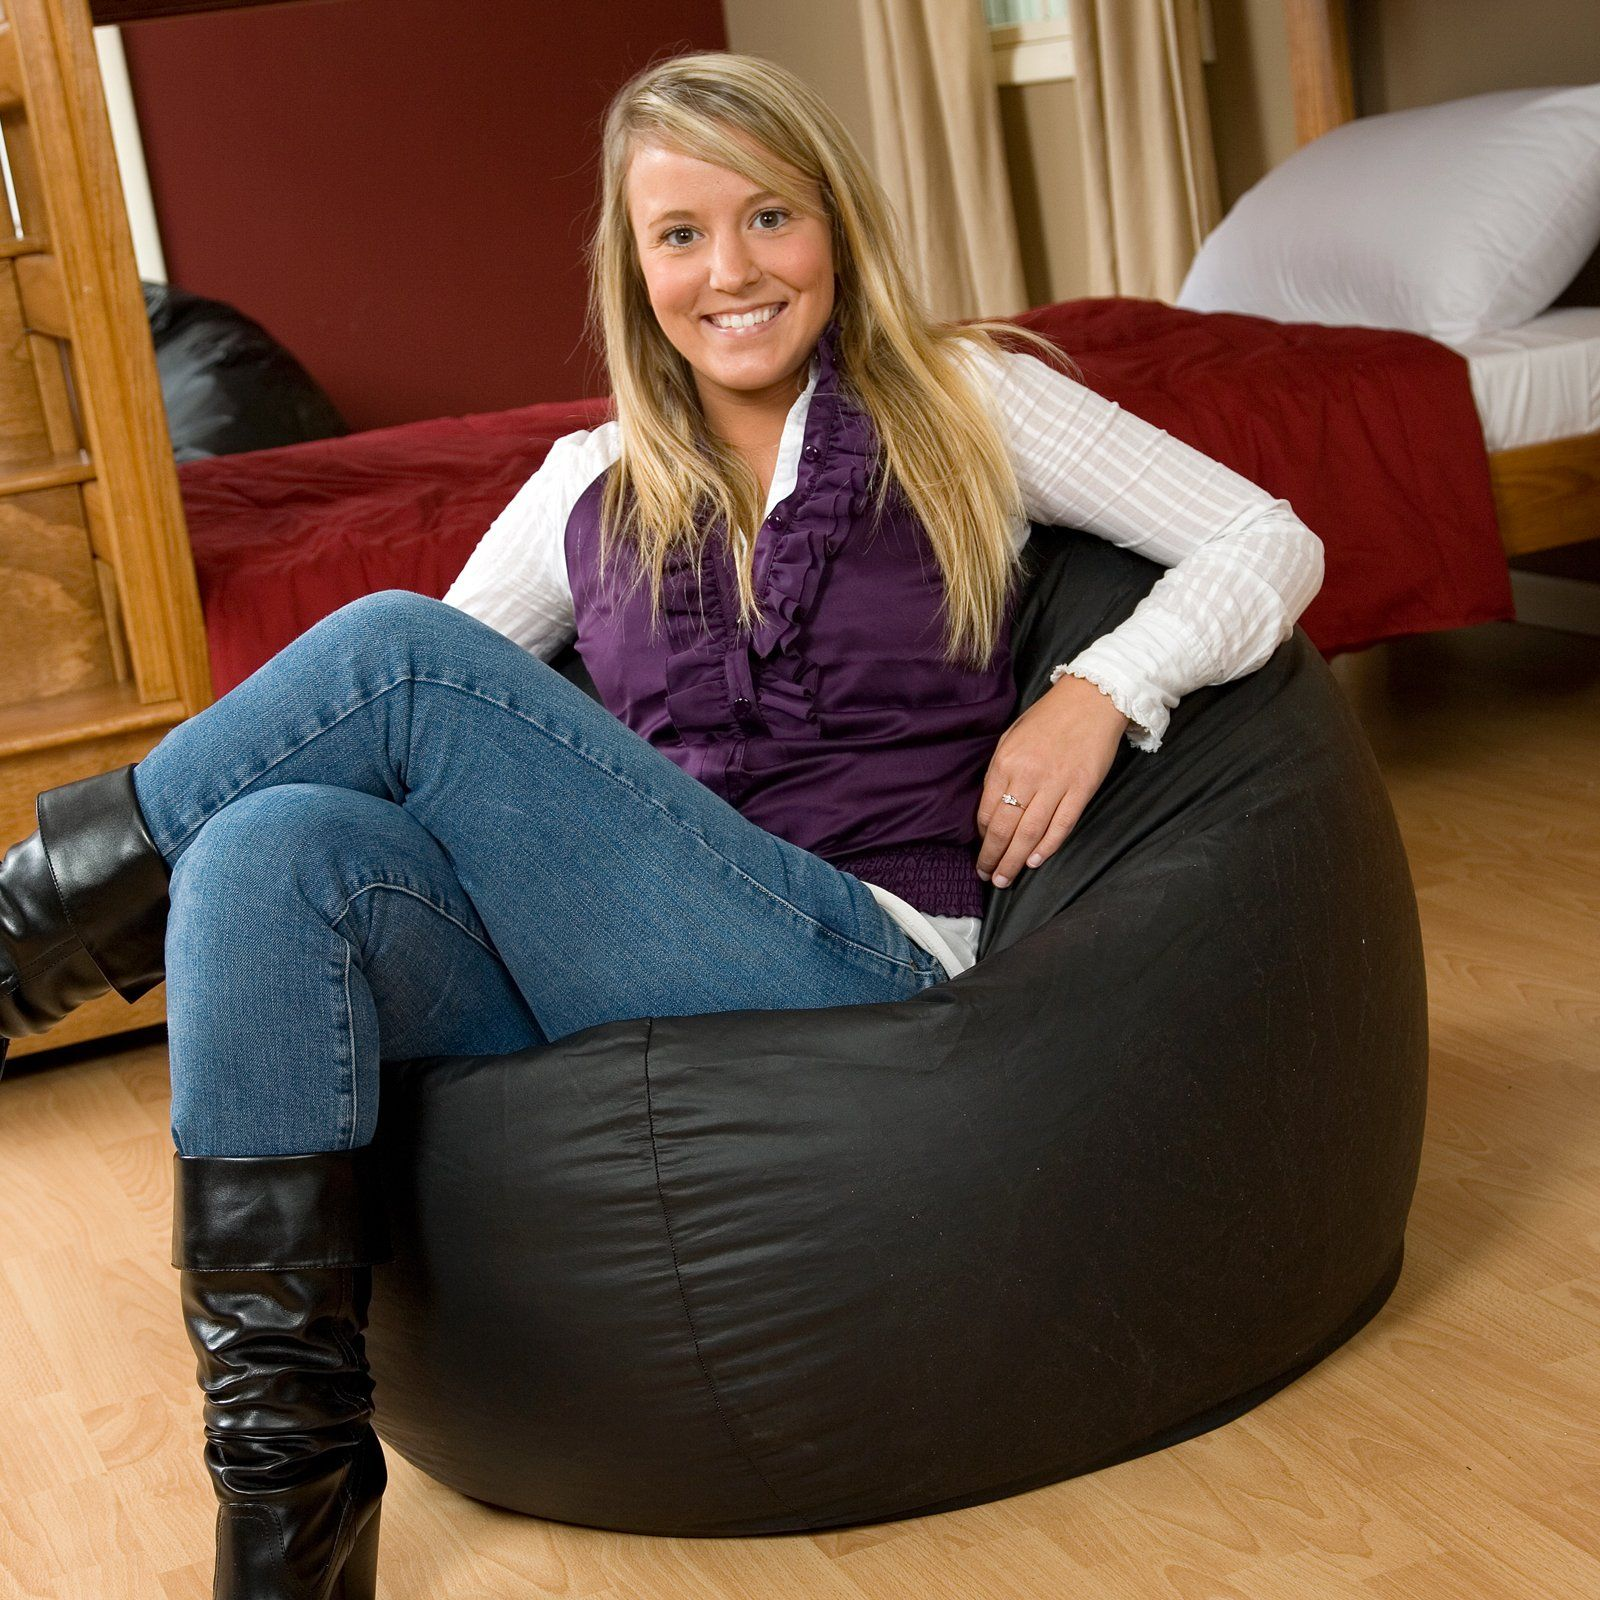 Large Vinyl Puck Bean Bag Chair $89.98